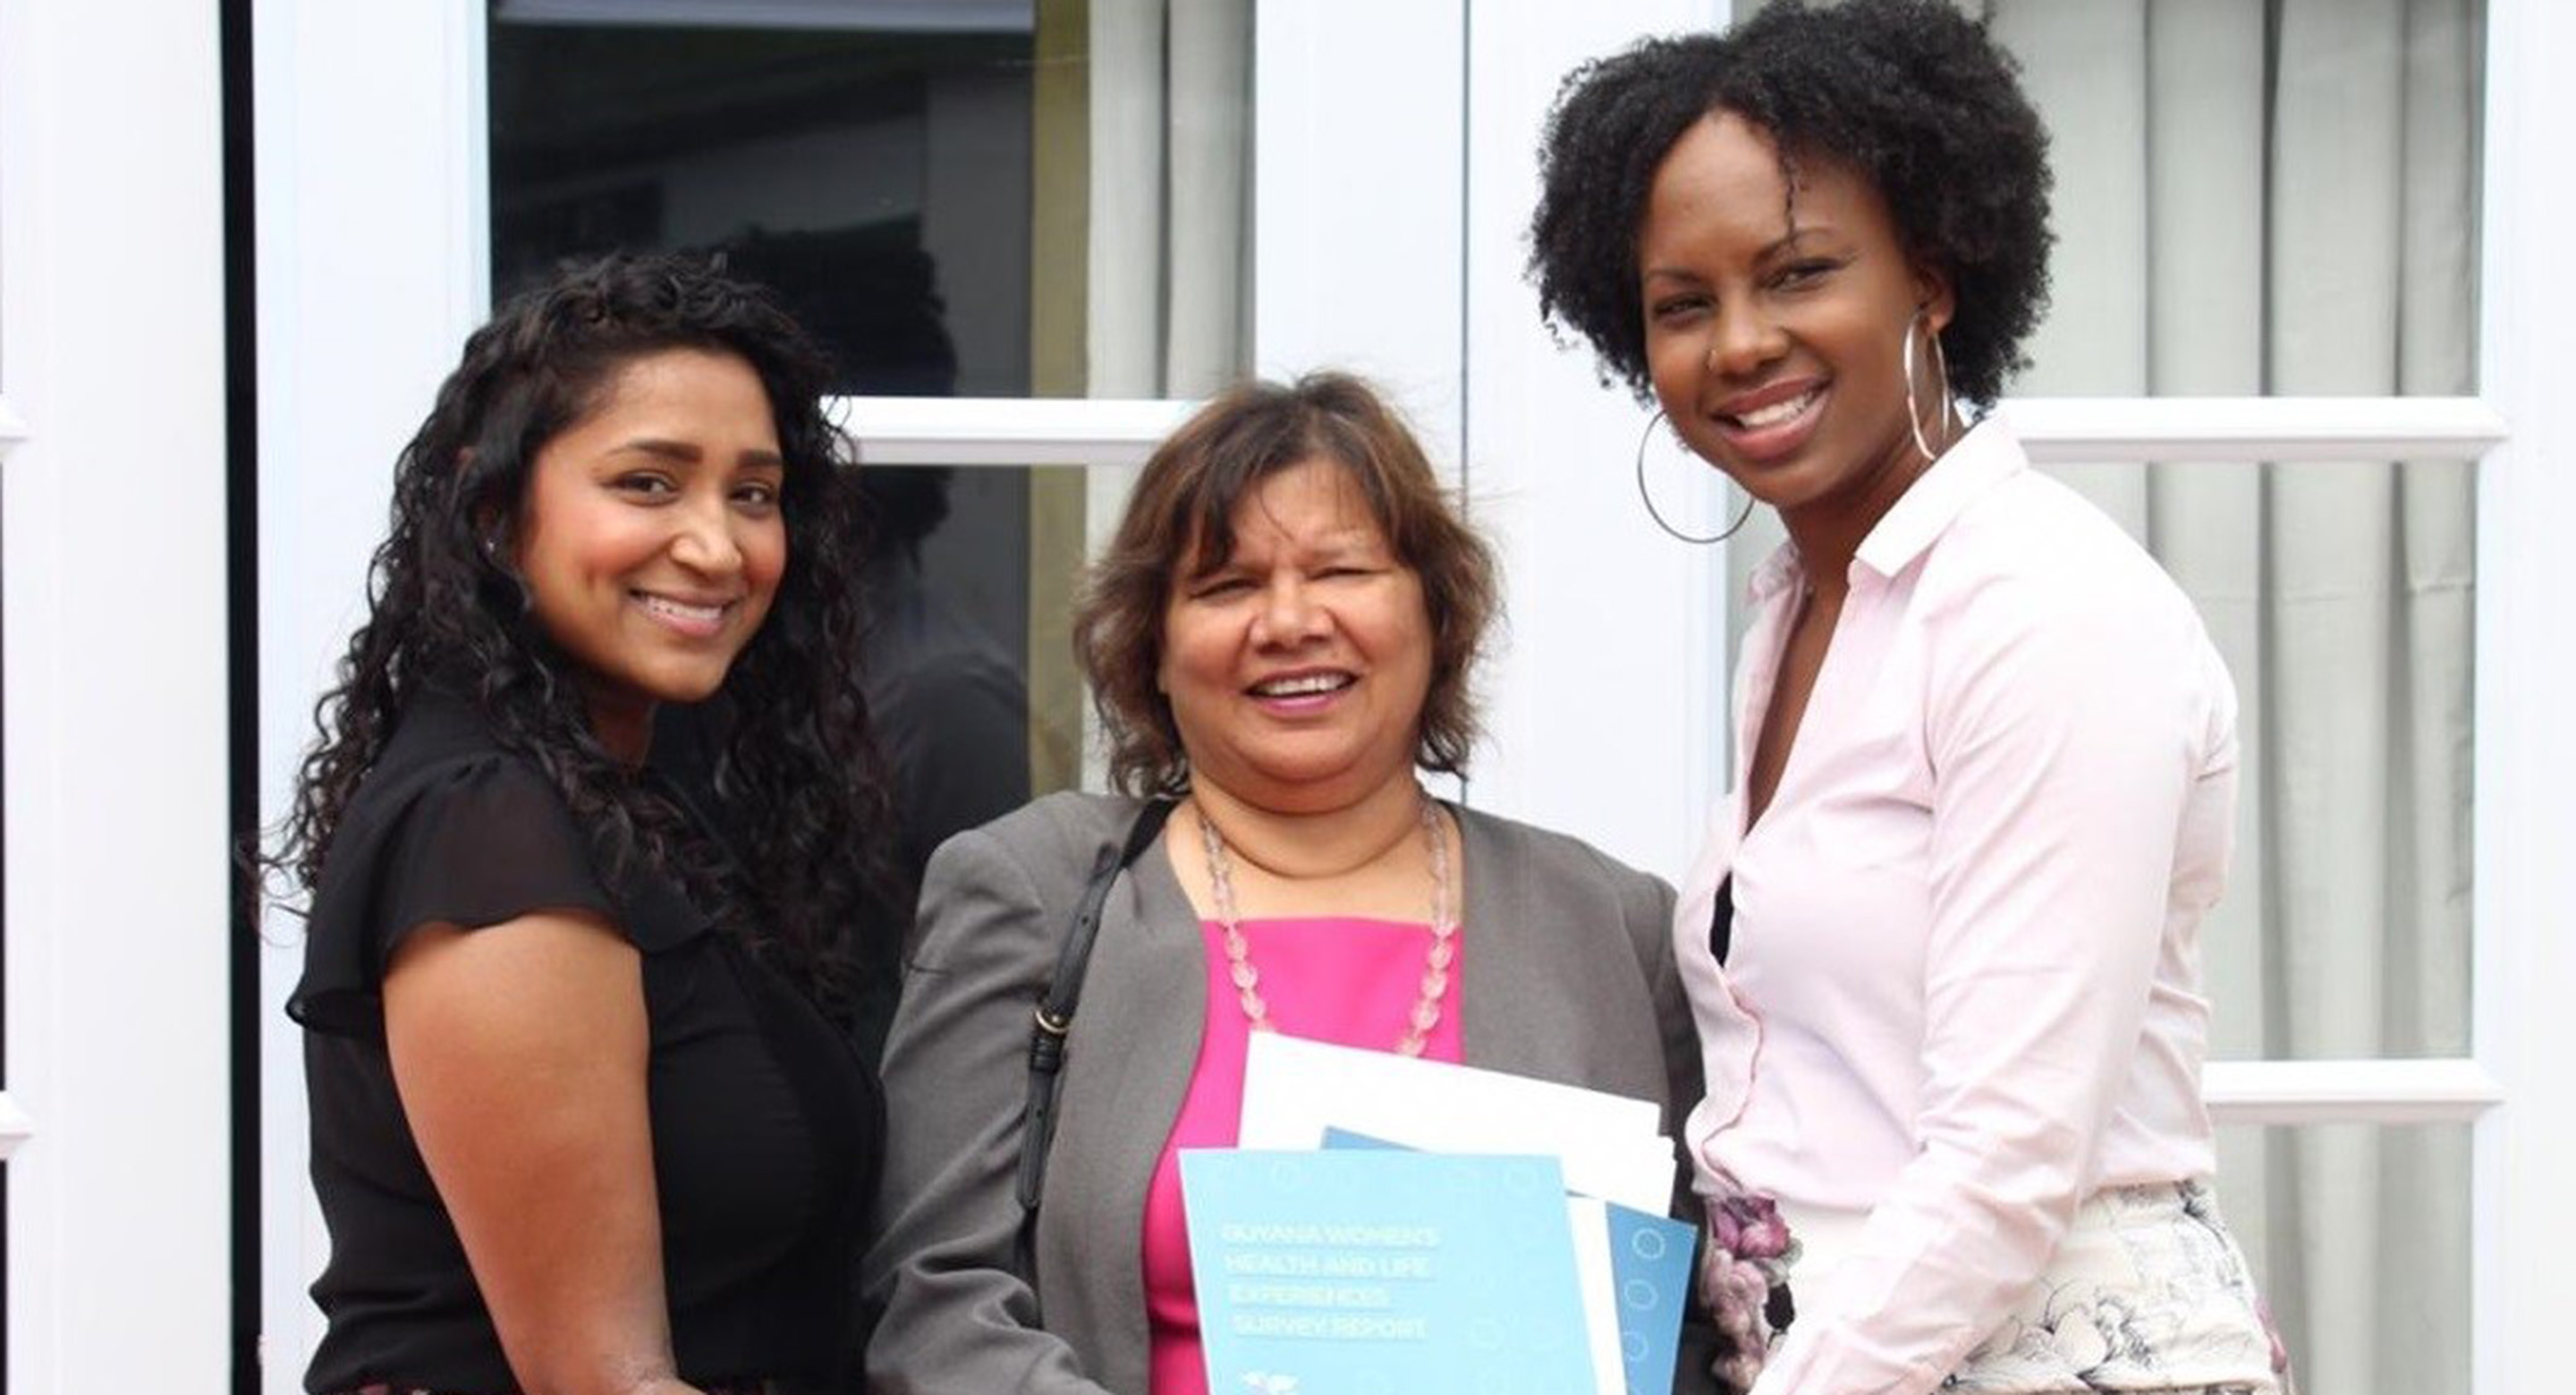 Sireesha Bobbili of CAMH and Ruth Rodney of York University led the qualitative component of a new report examining violence against women in Guyana. L to R: Sireesha Bobbili (CAMH), Honourable Lilian Chatterjee (Canadian High Commissioner to Guyana), Ruth Rodney (York University). Image credit: Carl Croker